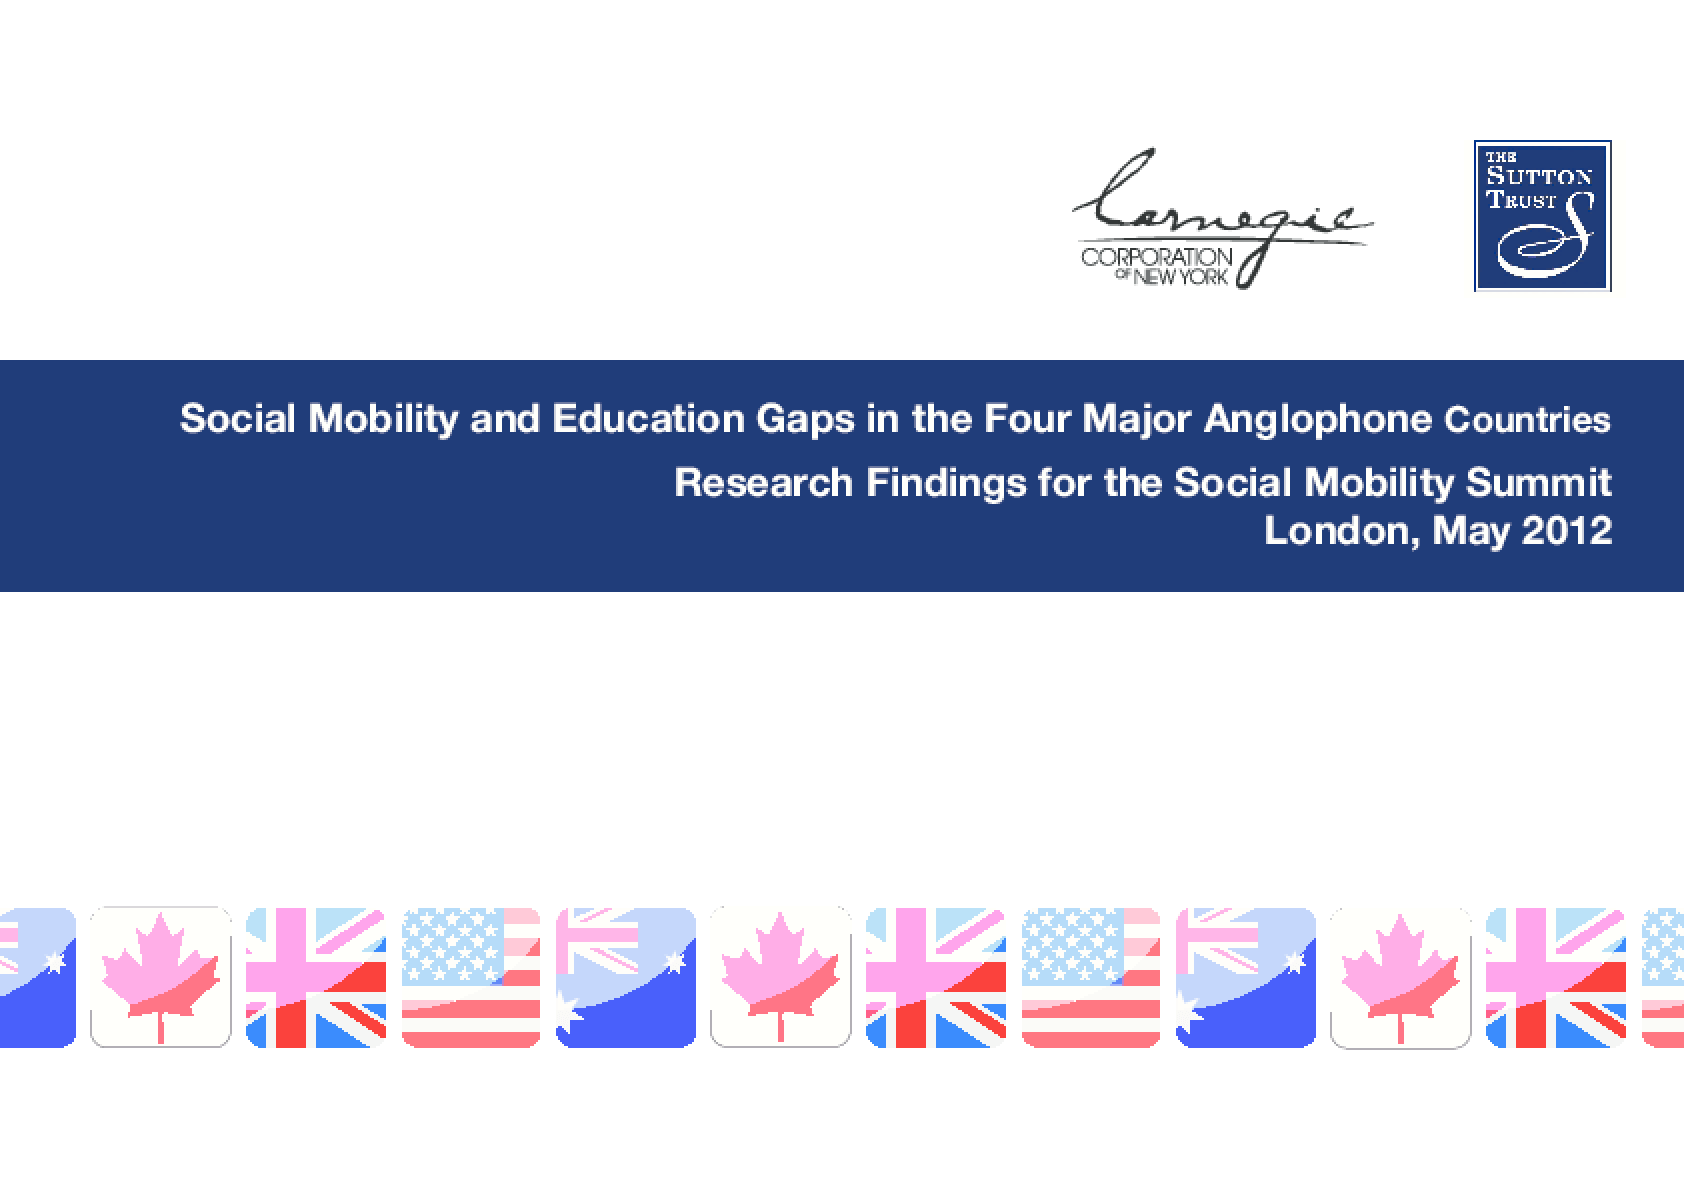 Social Mobility and Education Gaps in the Four Major Anglophone Countries